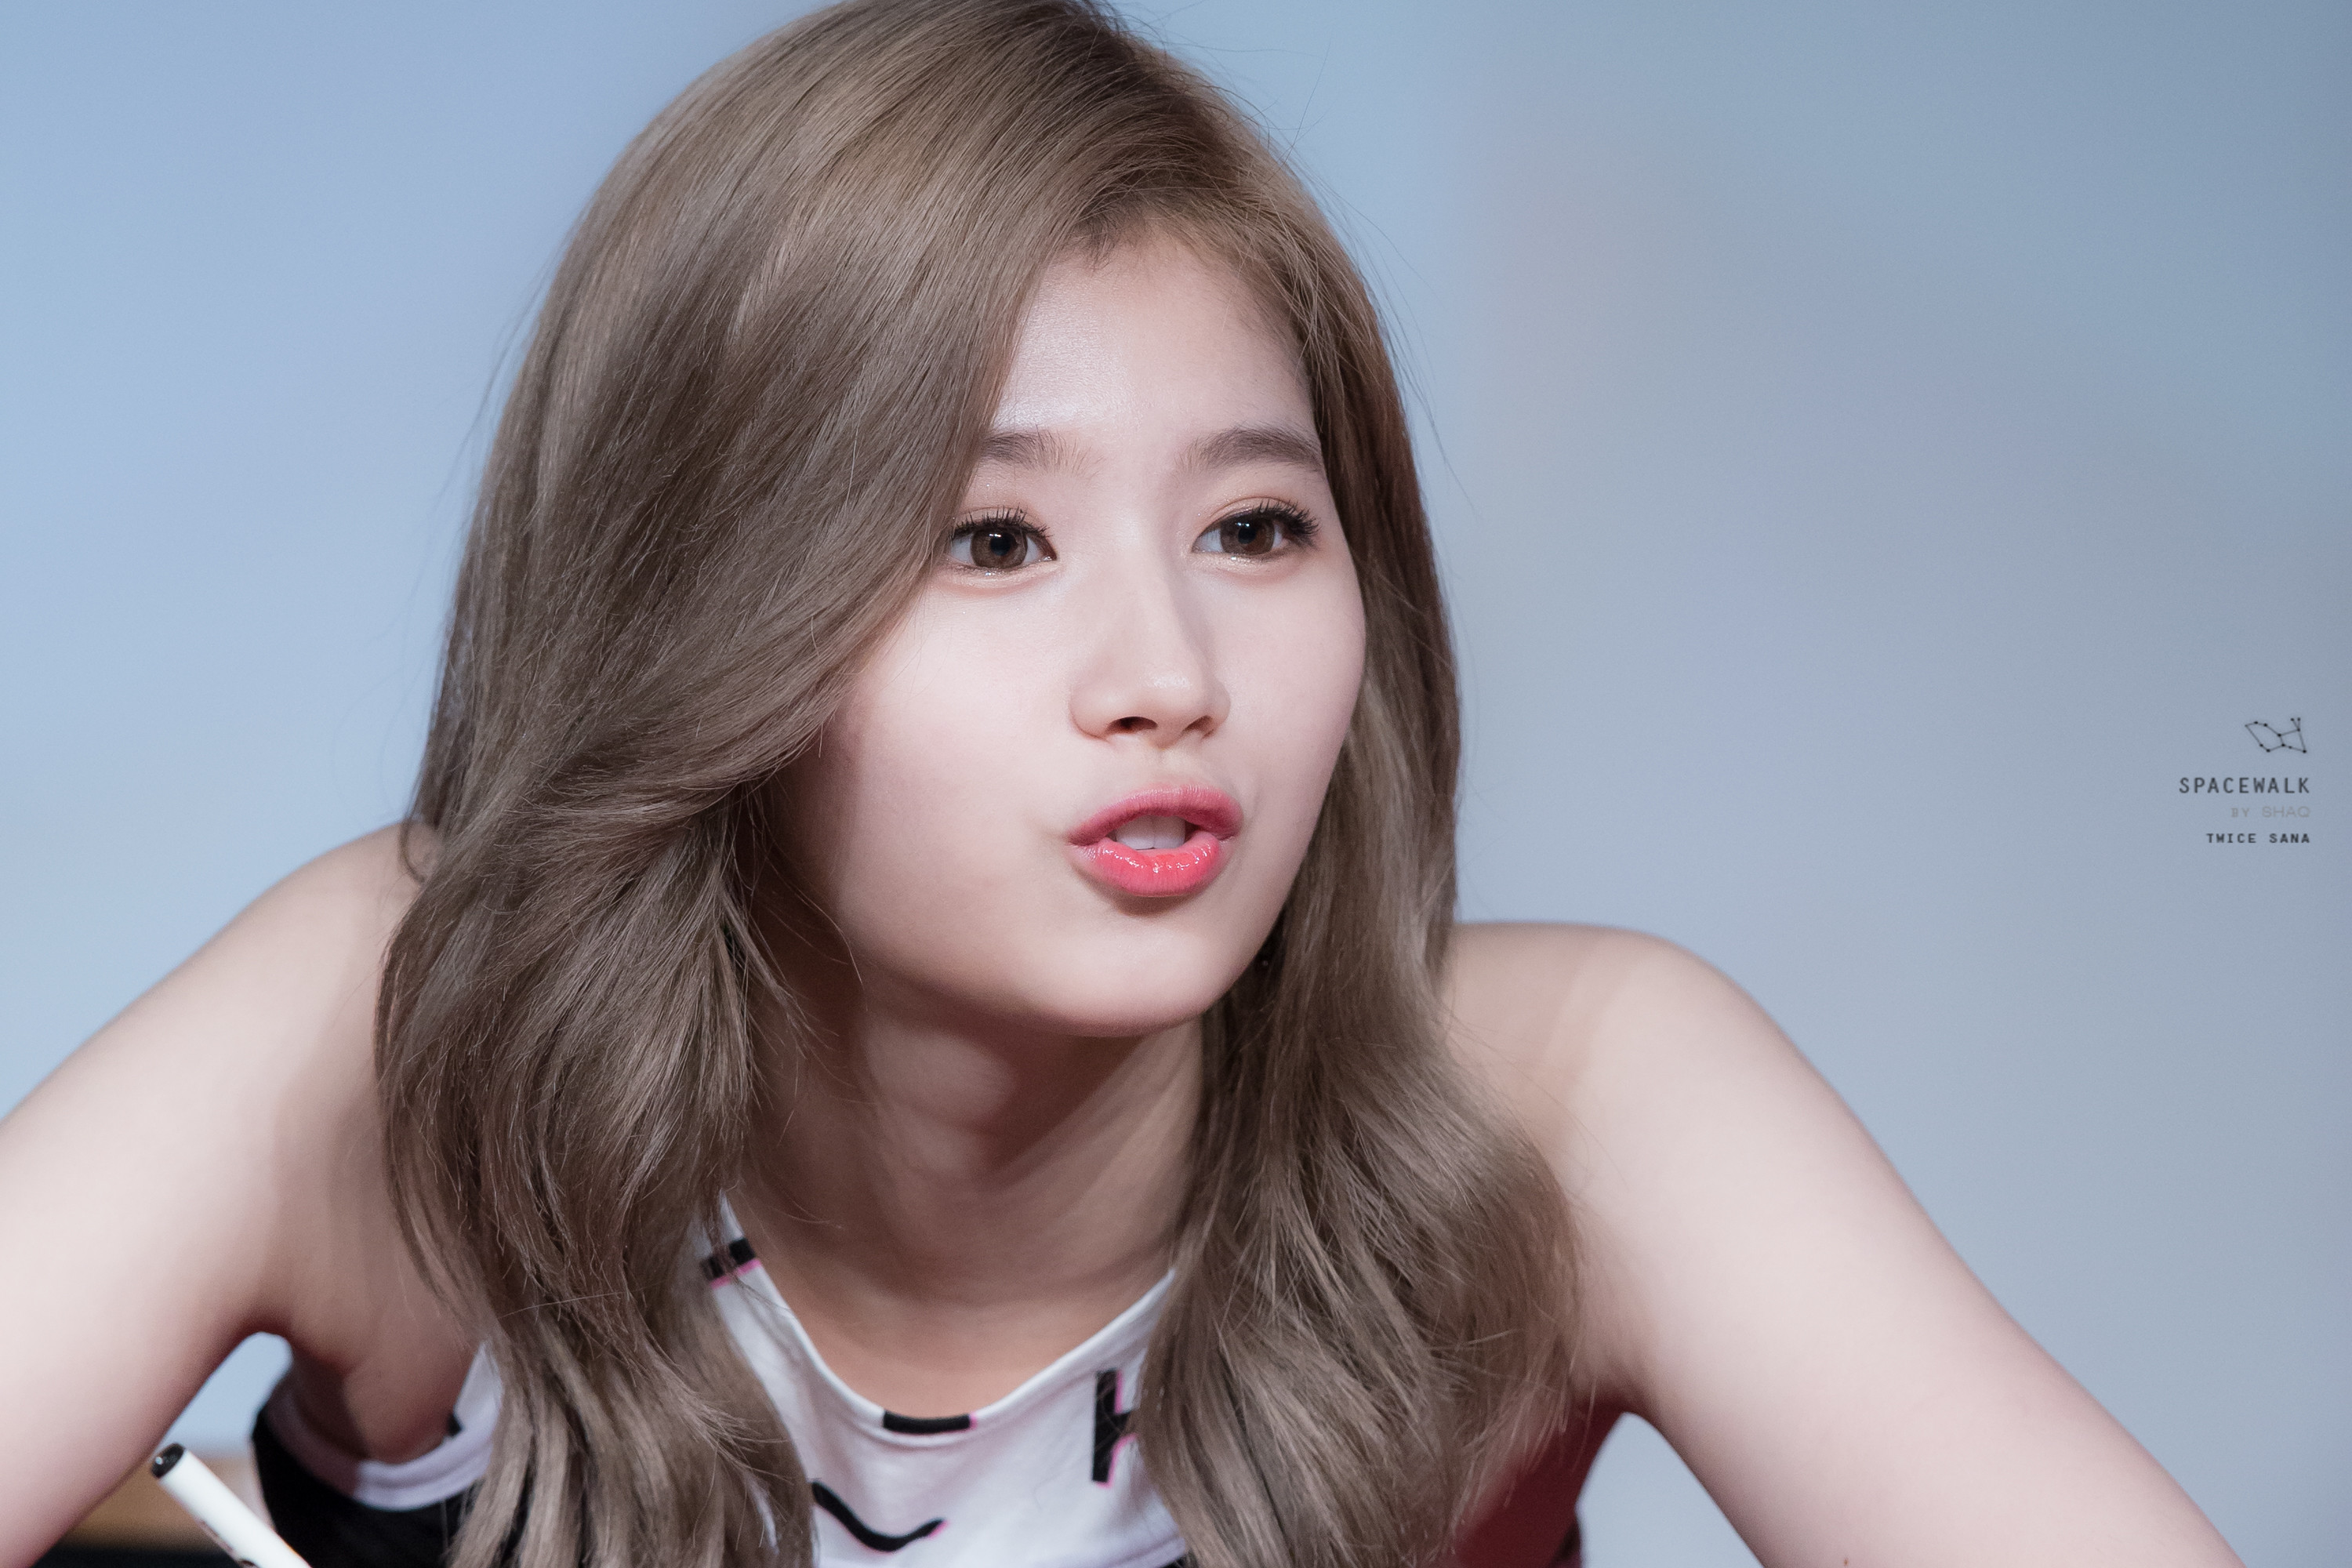 Cute Wallpapers Iphone 6 Plus Sana Twice Wallpapers 183 ①